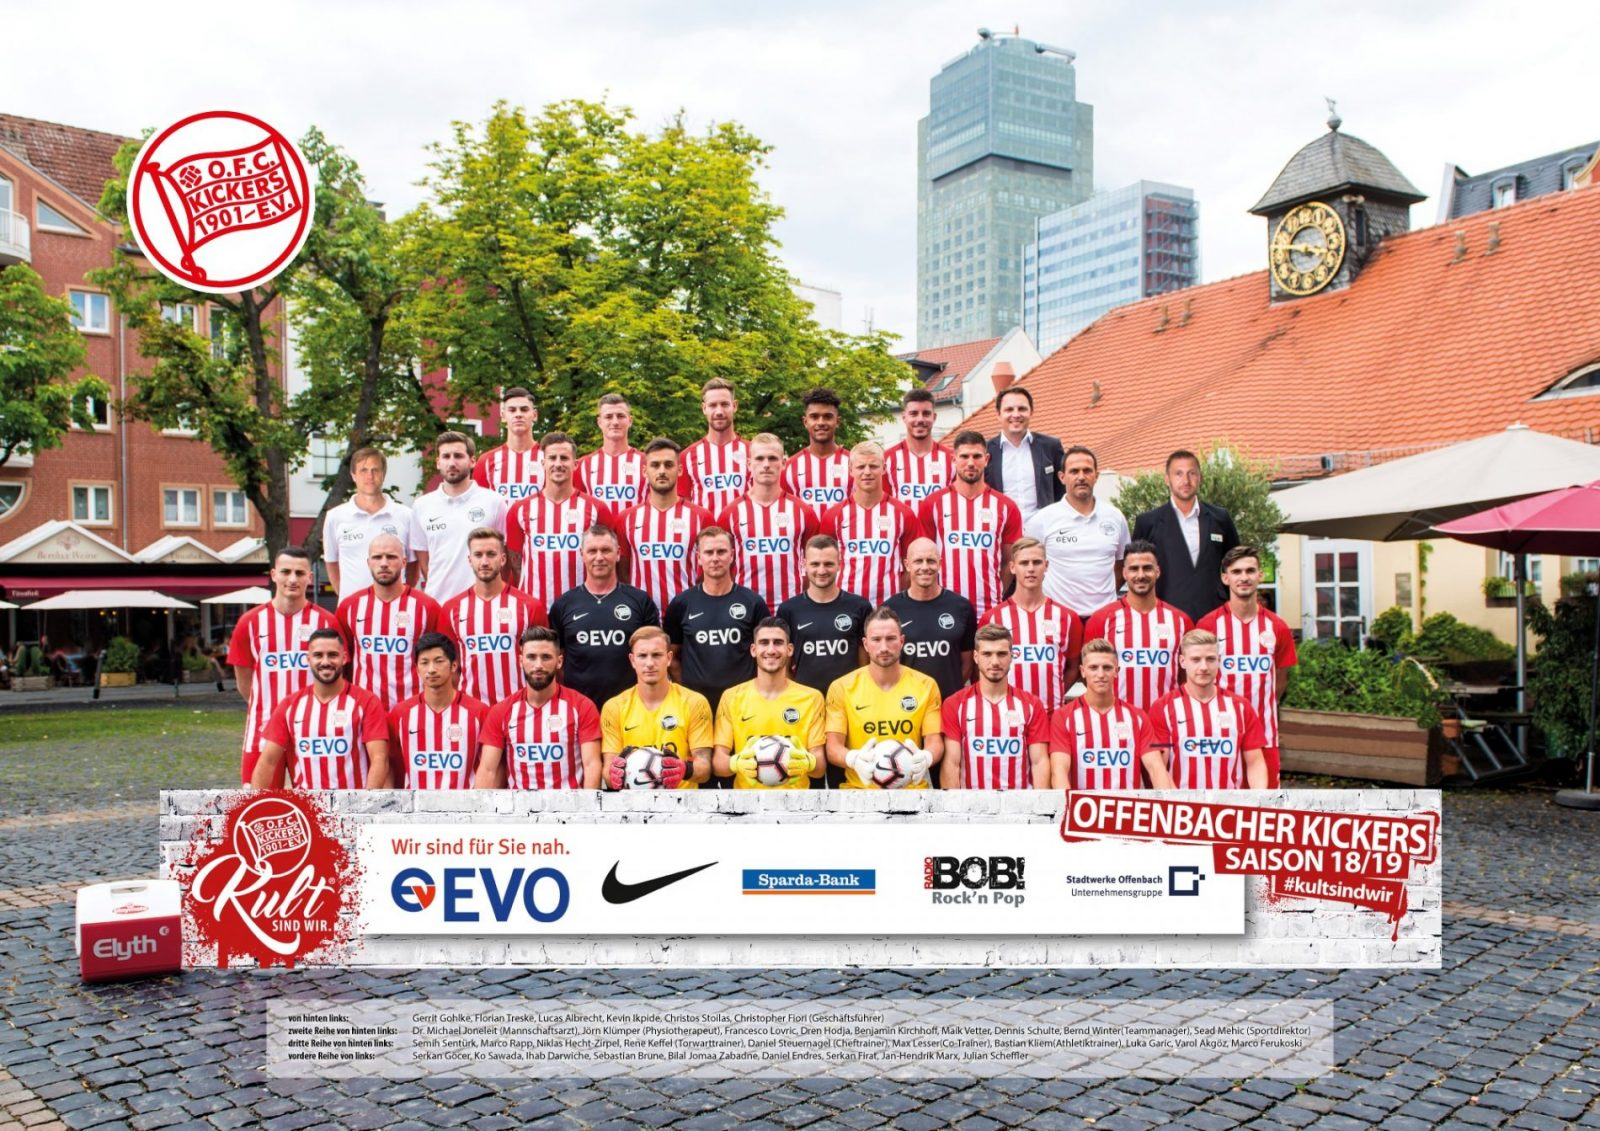 Team picture of OFC Offenbacher Kickers from season 2018/2019 (courtesy of © OFC Kickers 1901)